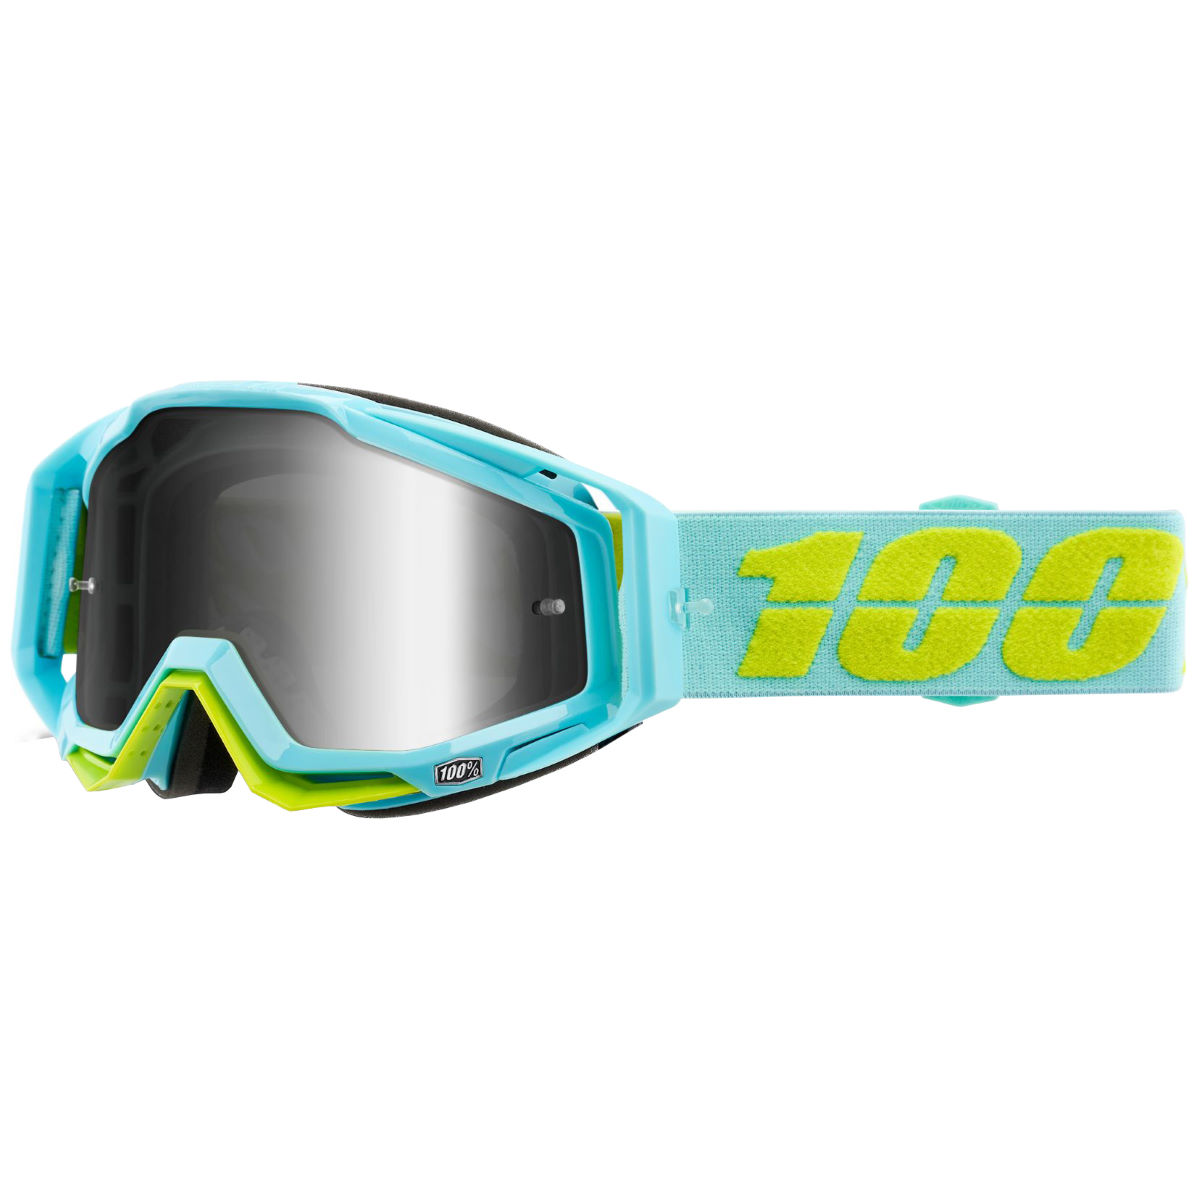 100% Racecraft Goggle Silver Mirror Lens - One Size Turquoise